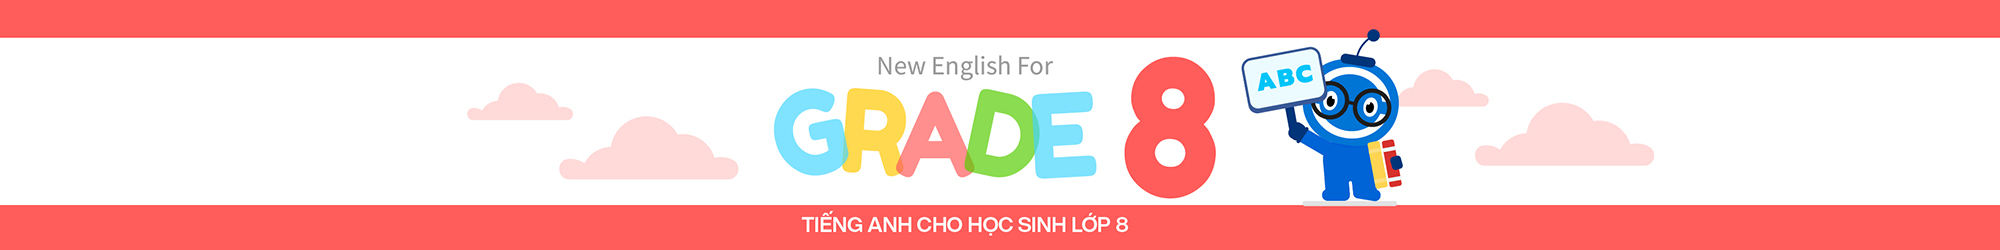 NEW ENGLISH FOR GRADE 8